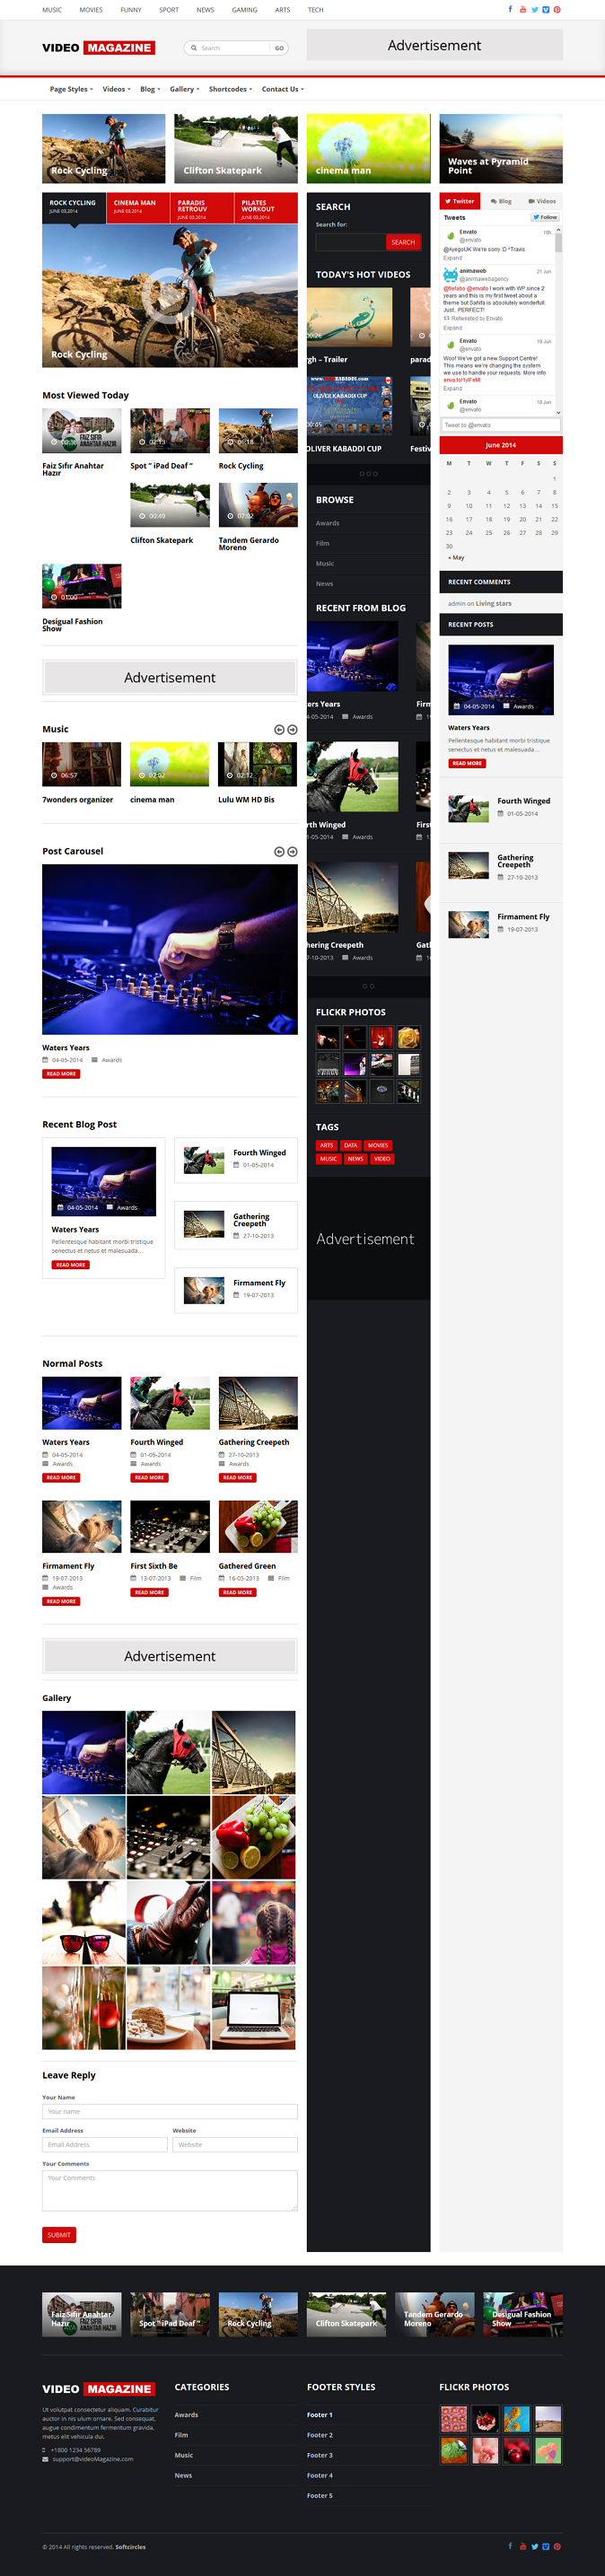 Video magazine is new energetic WordPress theme suitable for videos, movies, fashion magazines.  ...